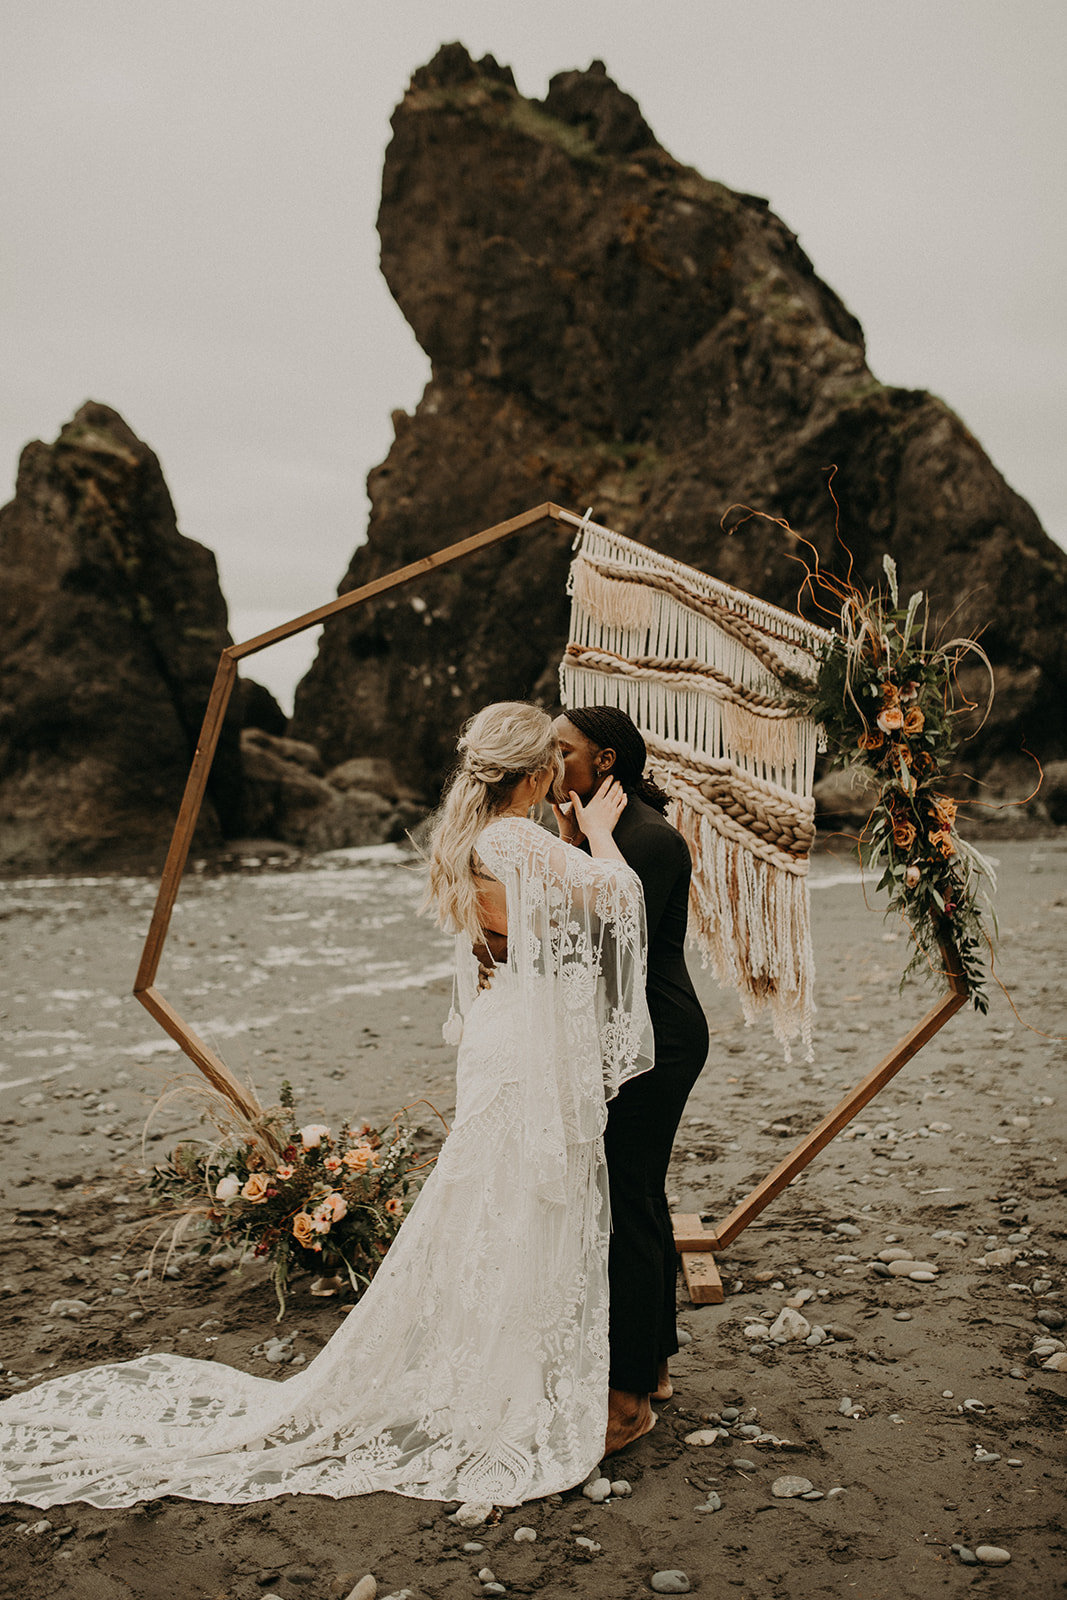 Ruby_Beach_Styled_Elopement_-_Run_Away_with_Me_Elopement_Collective_-_Kamra_Fuller_Photography_-_Ceremony-61